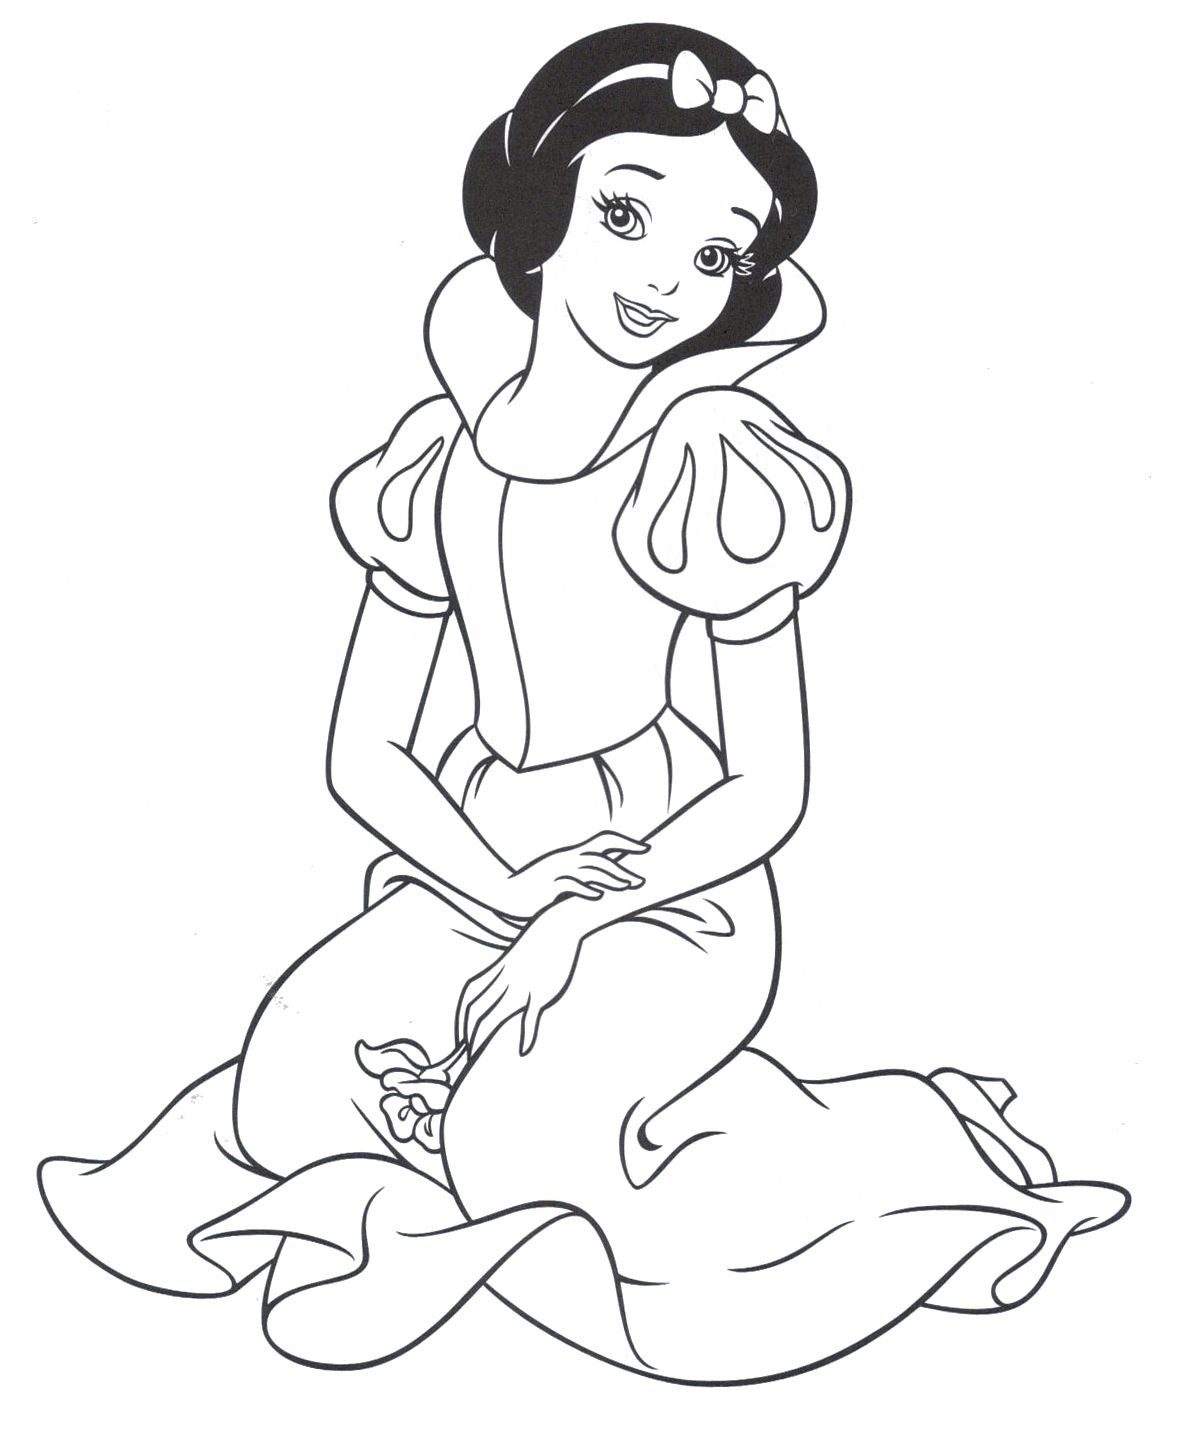 Princess Snow White Was Sitting Very Cute Coloring Pages | Coloring ...